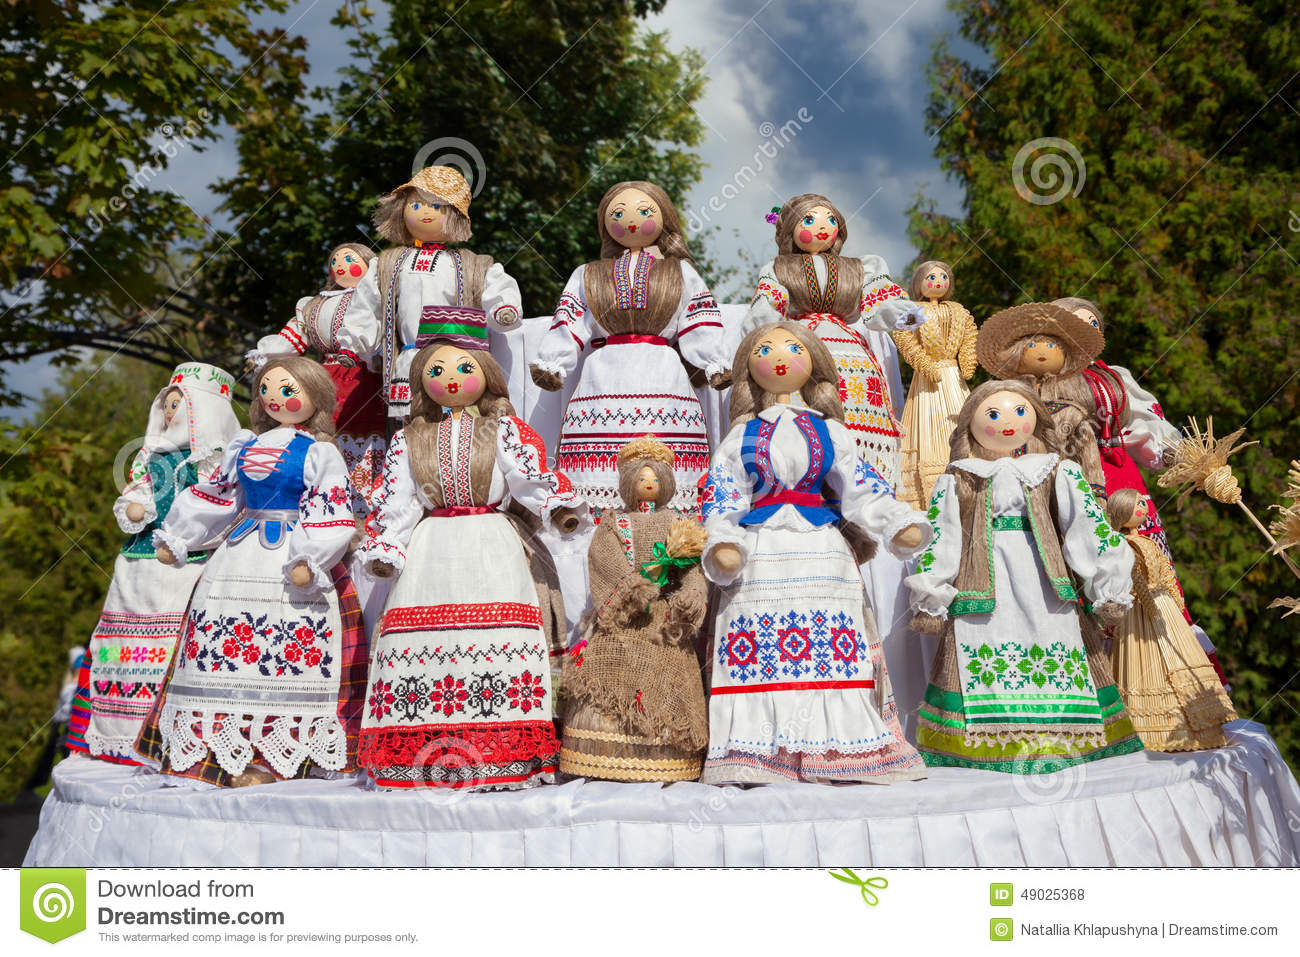 Belorussian dolls in national clothes